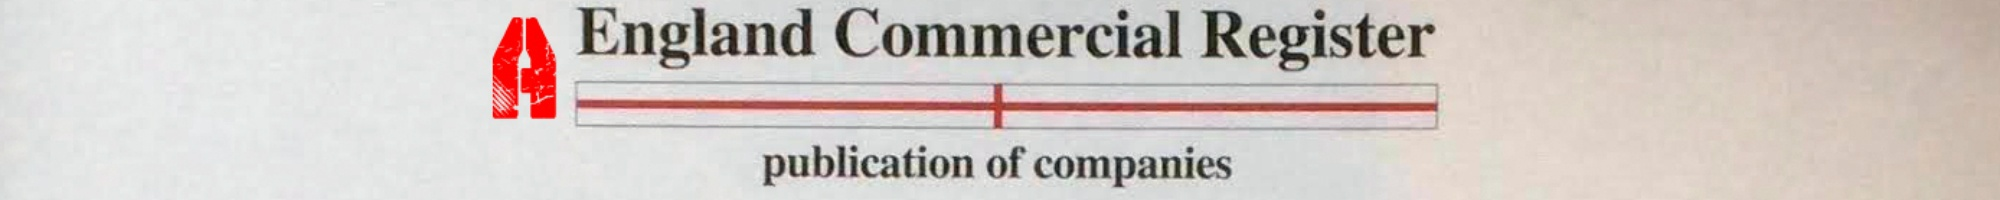 England Commercial Register